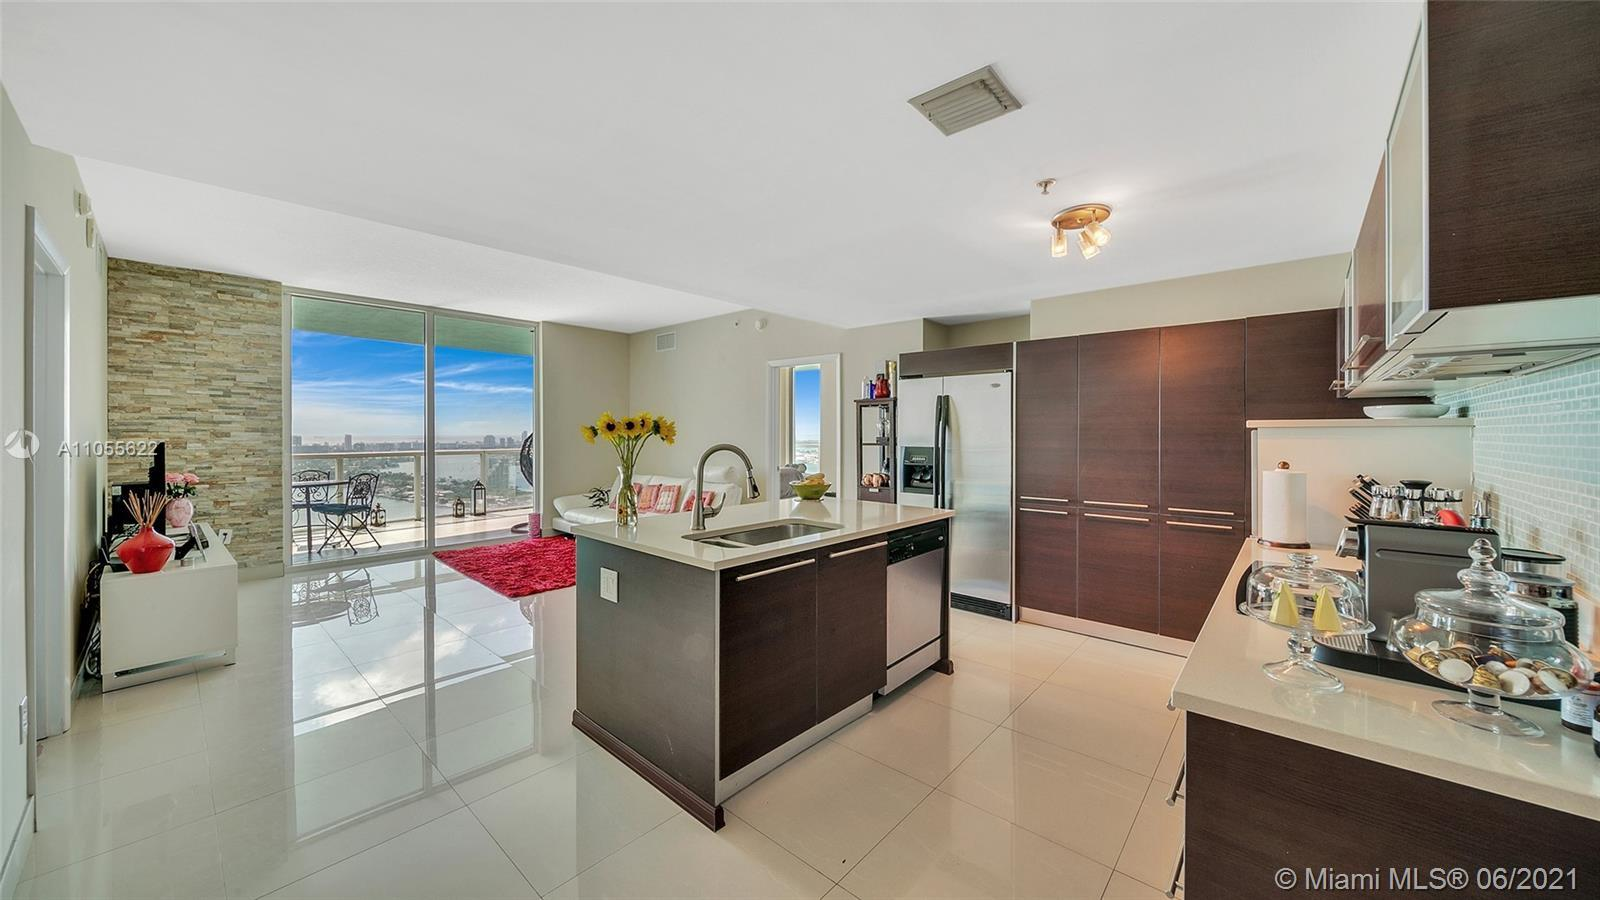 Live and enjoy the true Miami lifestyle from this 2 bedroom residence that offers breathtaking unobs